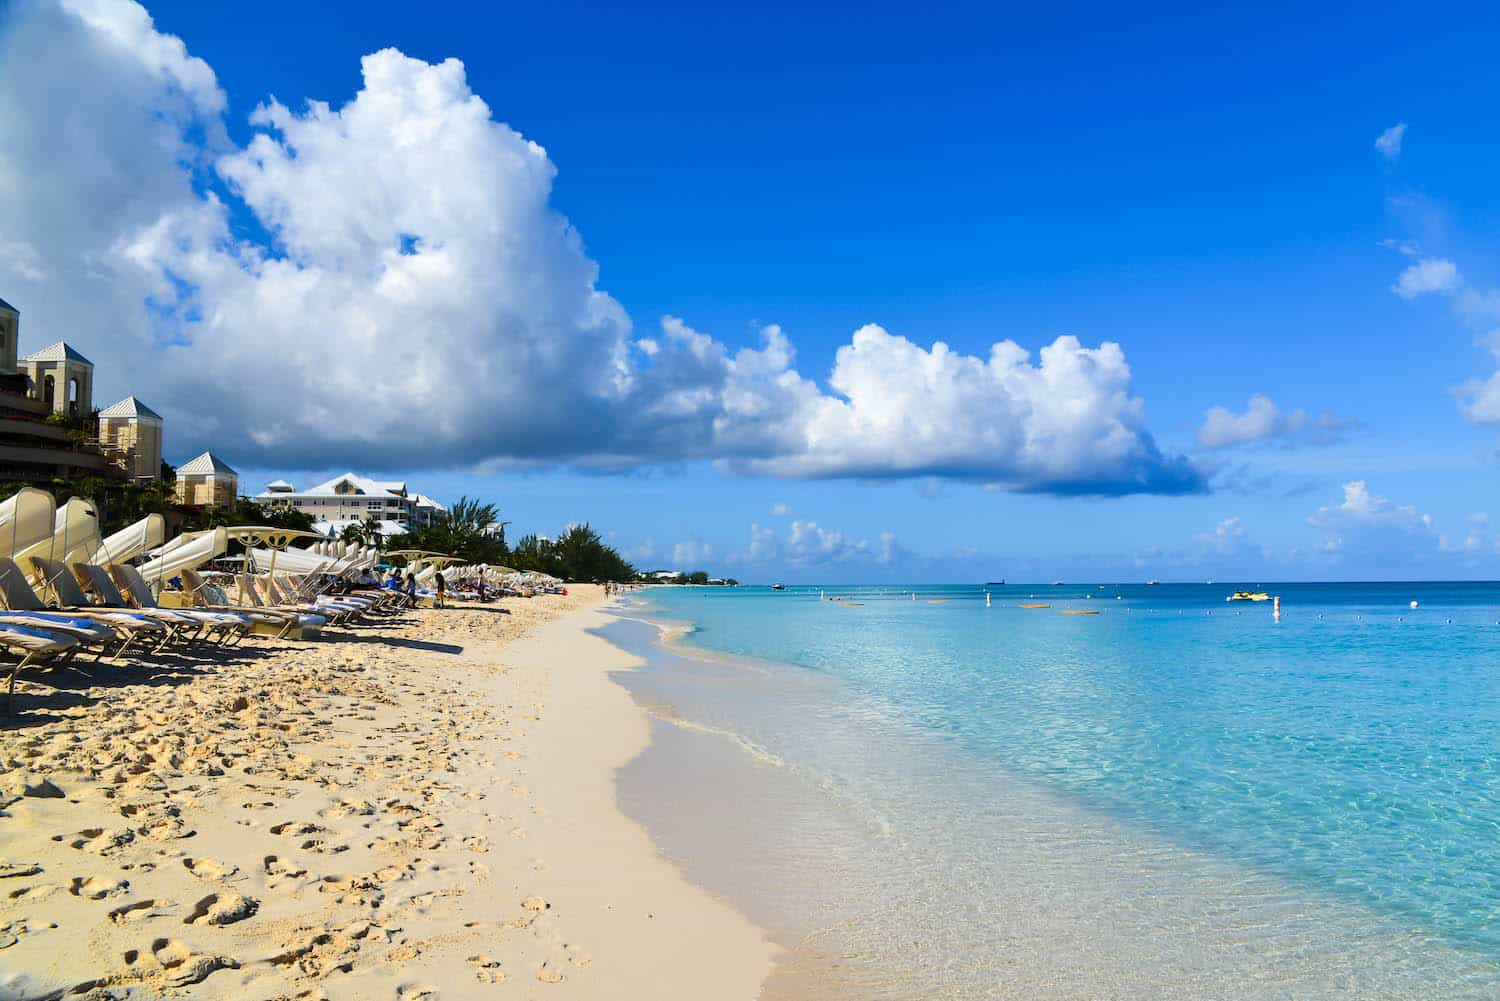 Permalink to Seven Mile Beach Cayman Islands